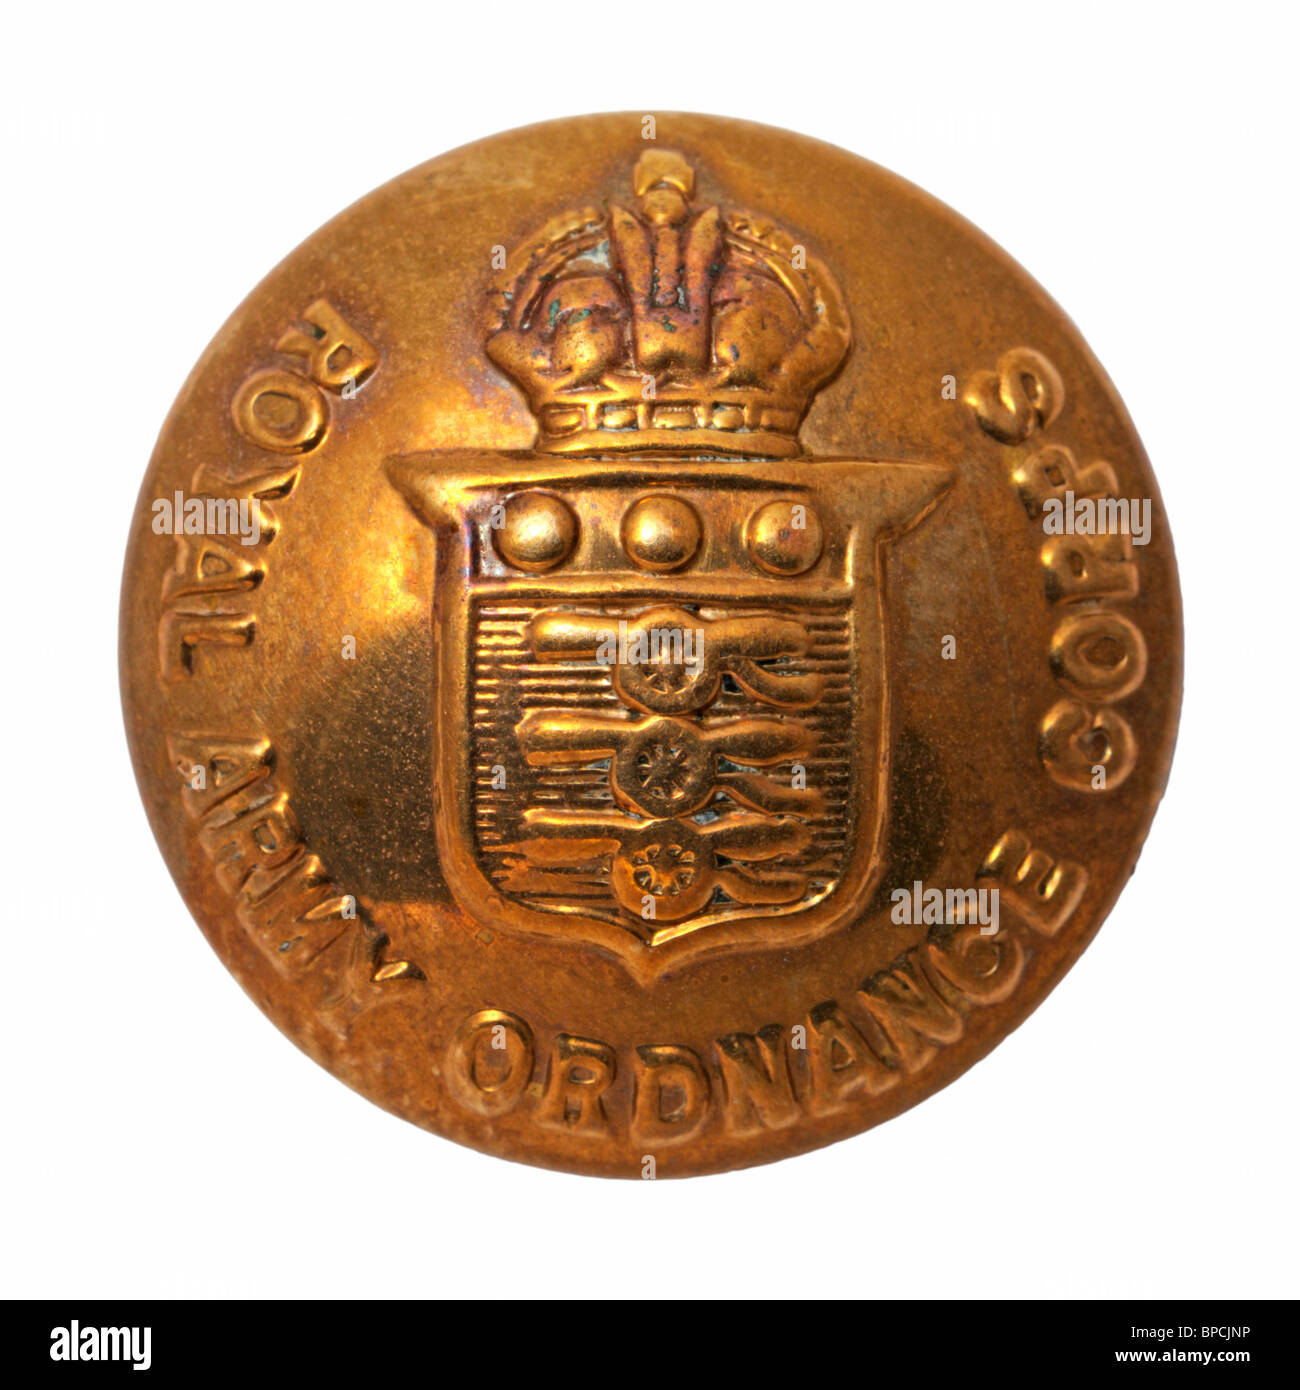 British Military Button - Royal Army Ordnance Corps - Stock Image